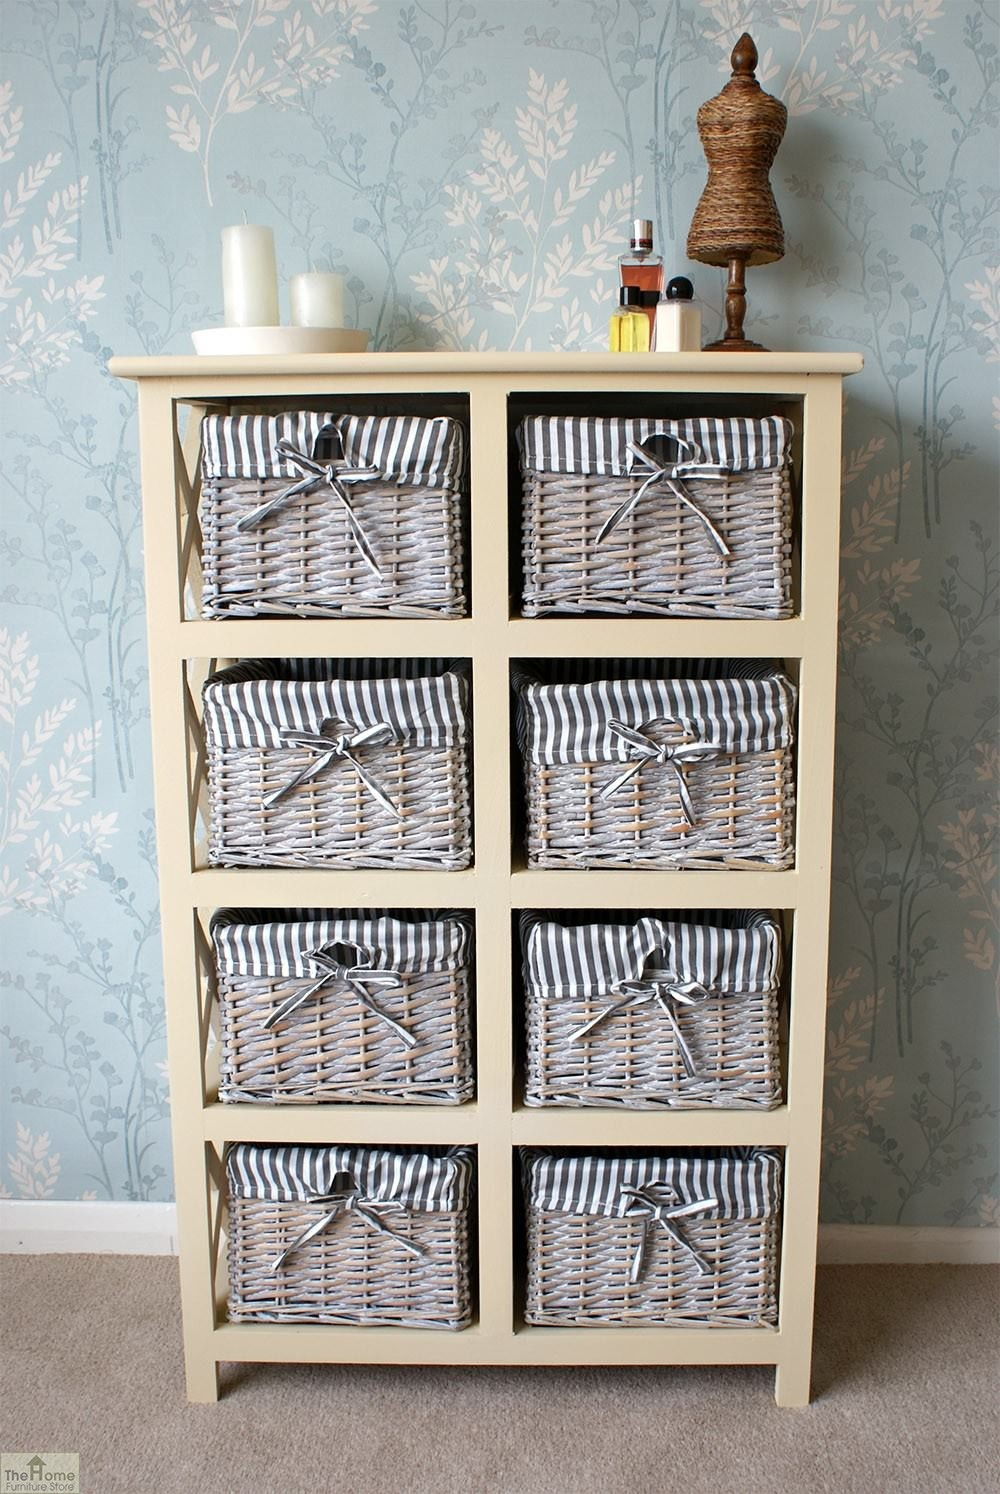 Basket Storage With Drawers Cabinets ~ Selsey drawer wicker storage unit the home furniture store